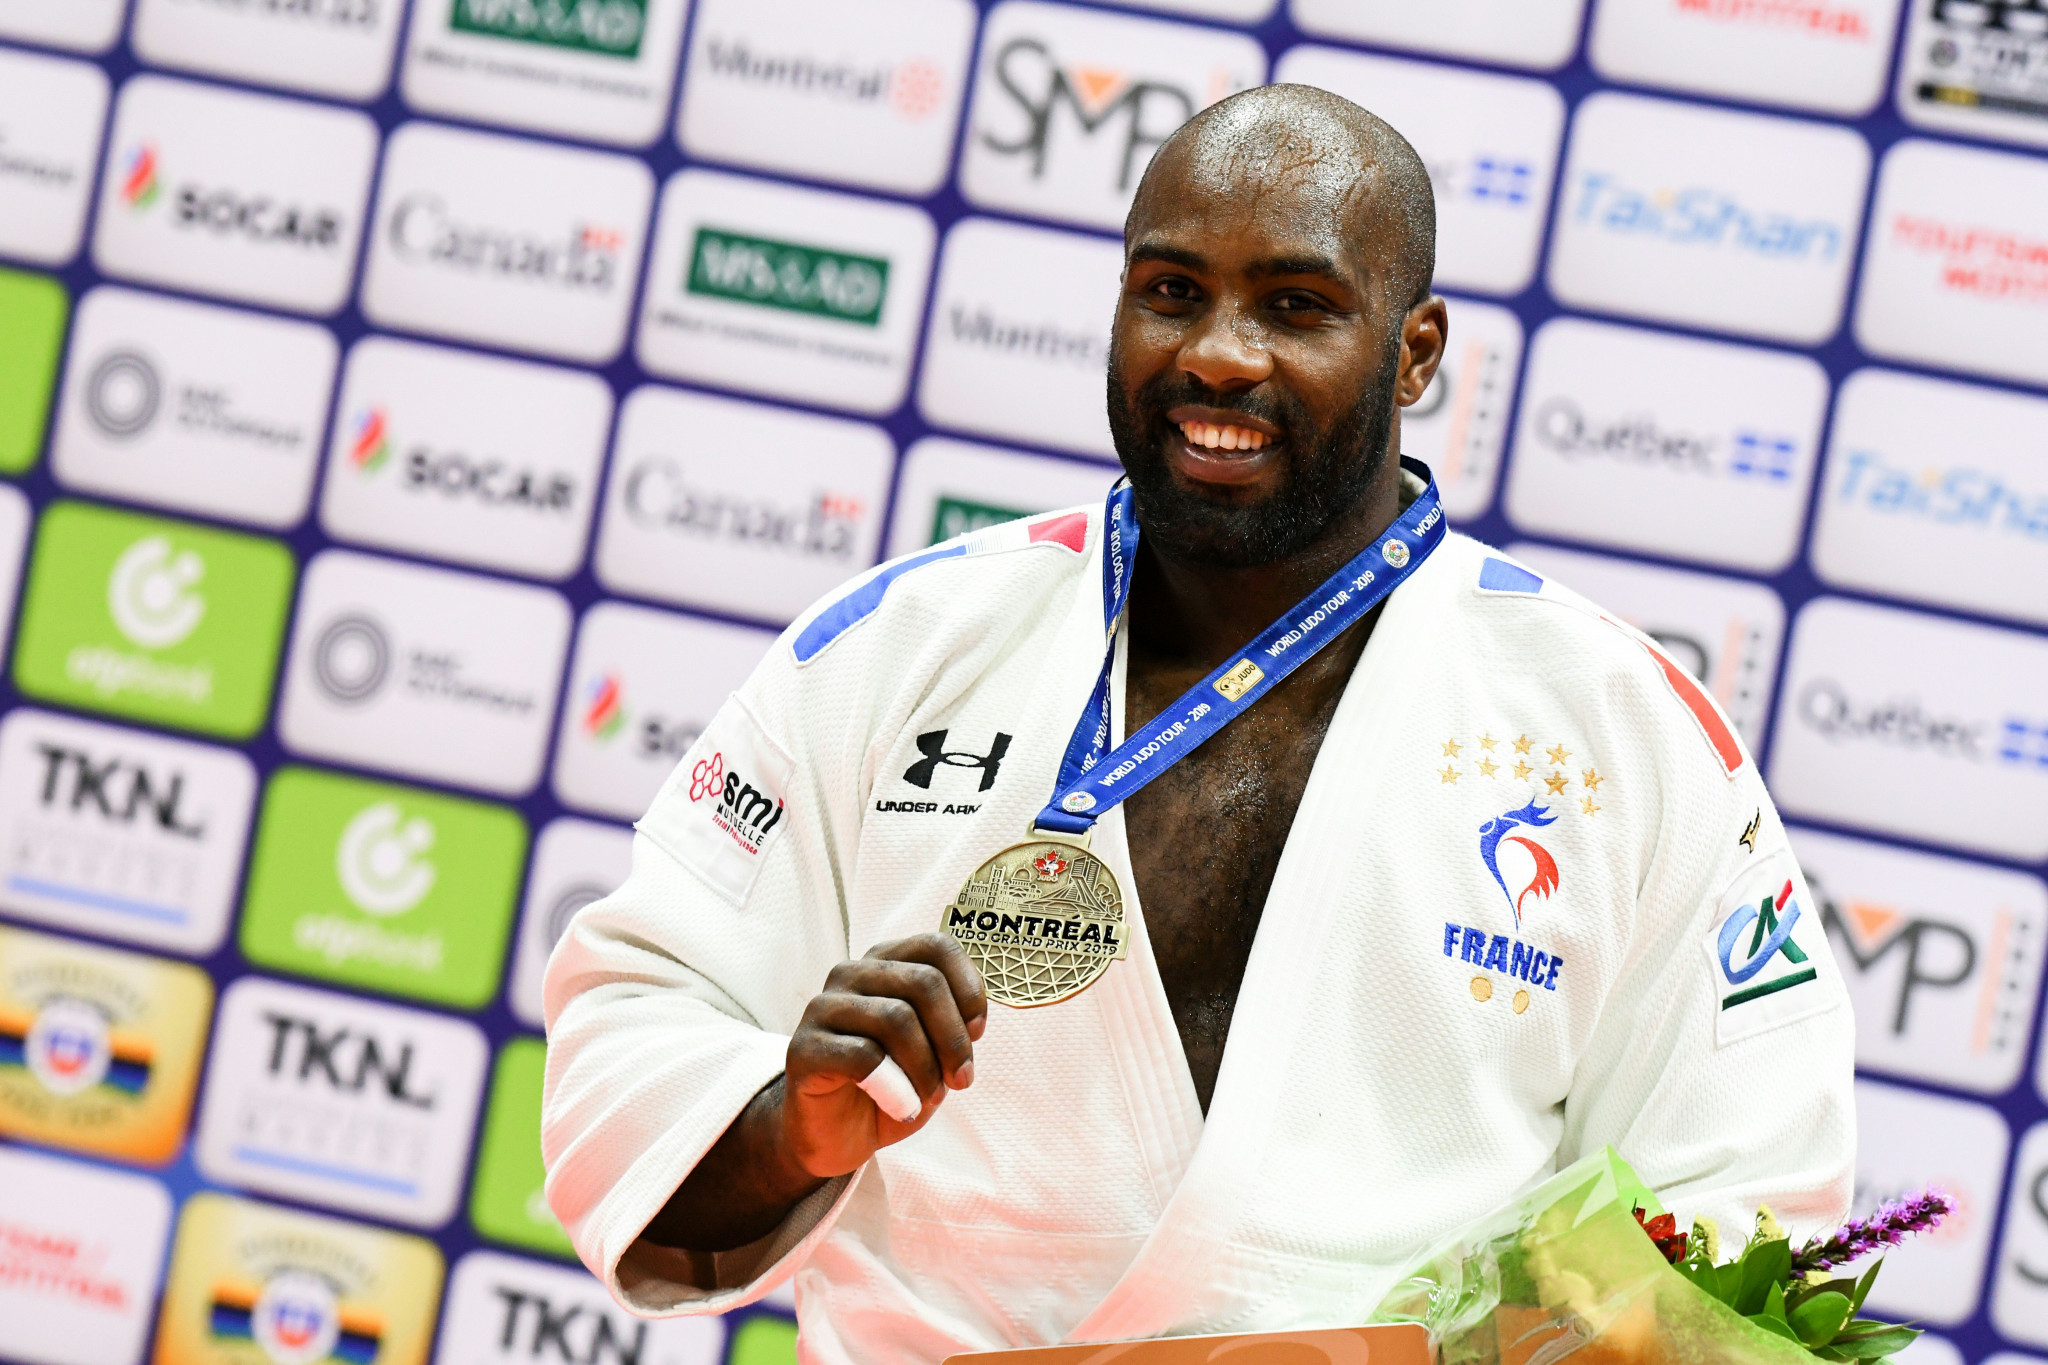 Riner and Krpálek bid for glory as IJF Grand Slam returns to Brazil